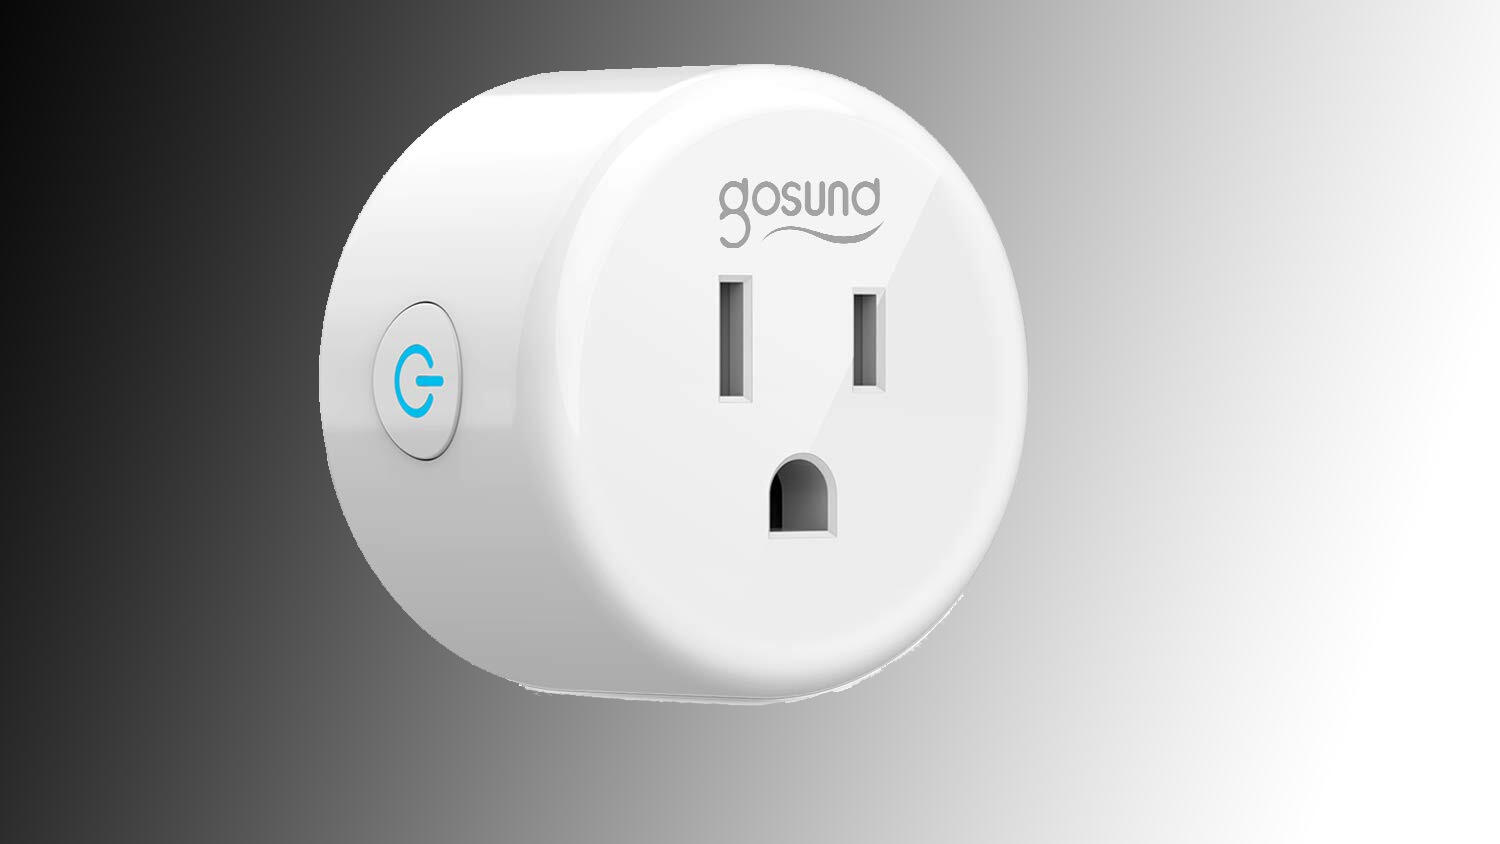 Get a 4-pack of Wi-Fi smart plugs for less than $11, one of the lowest prices ever     - CNET